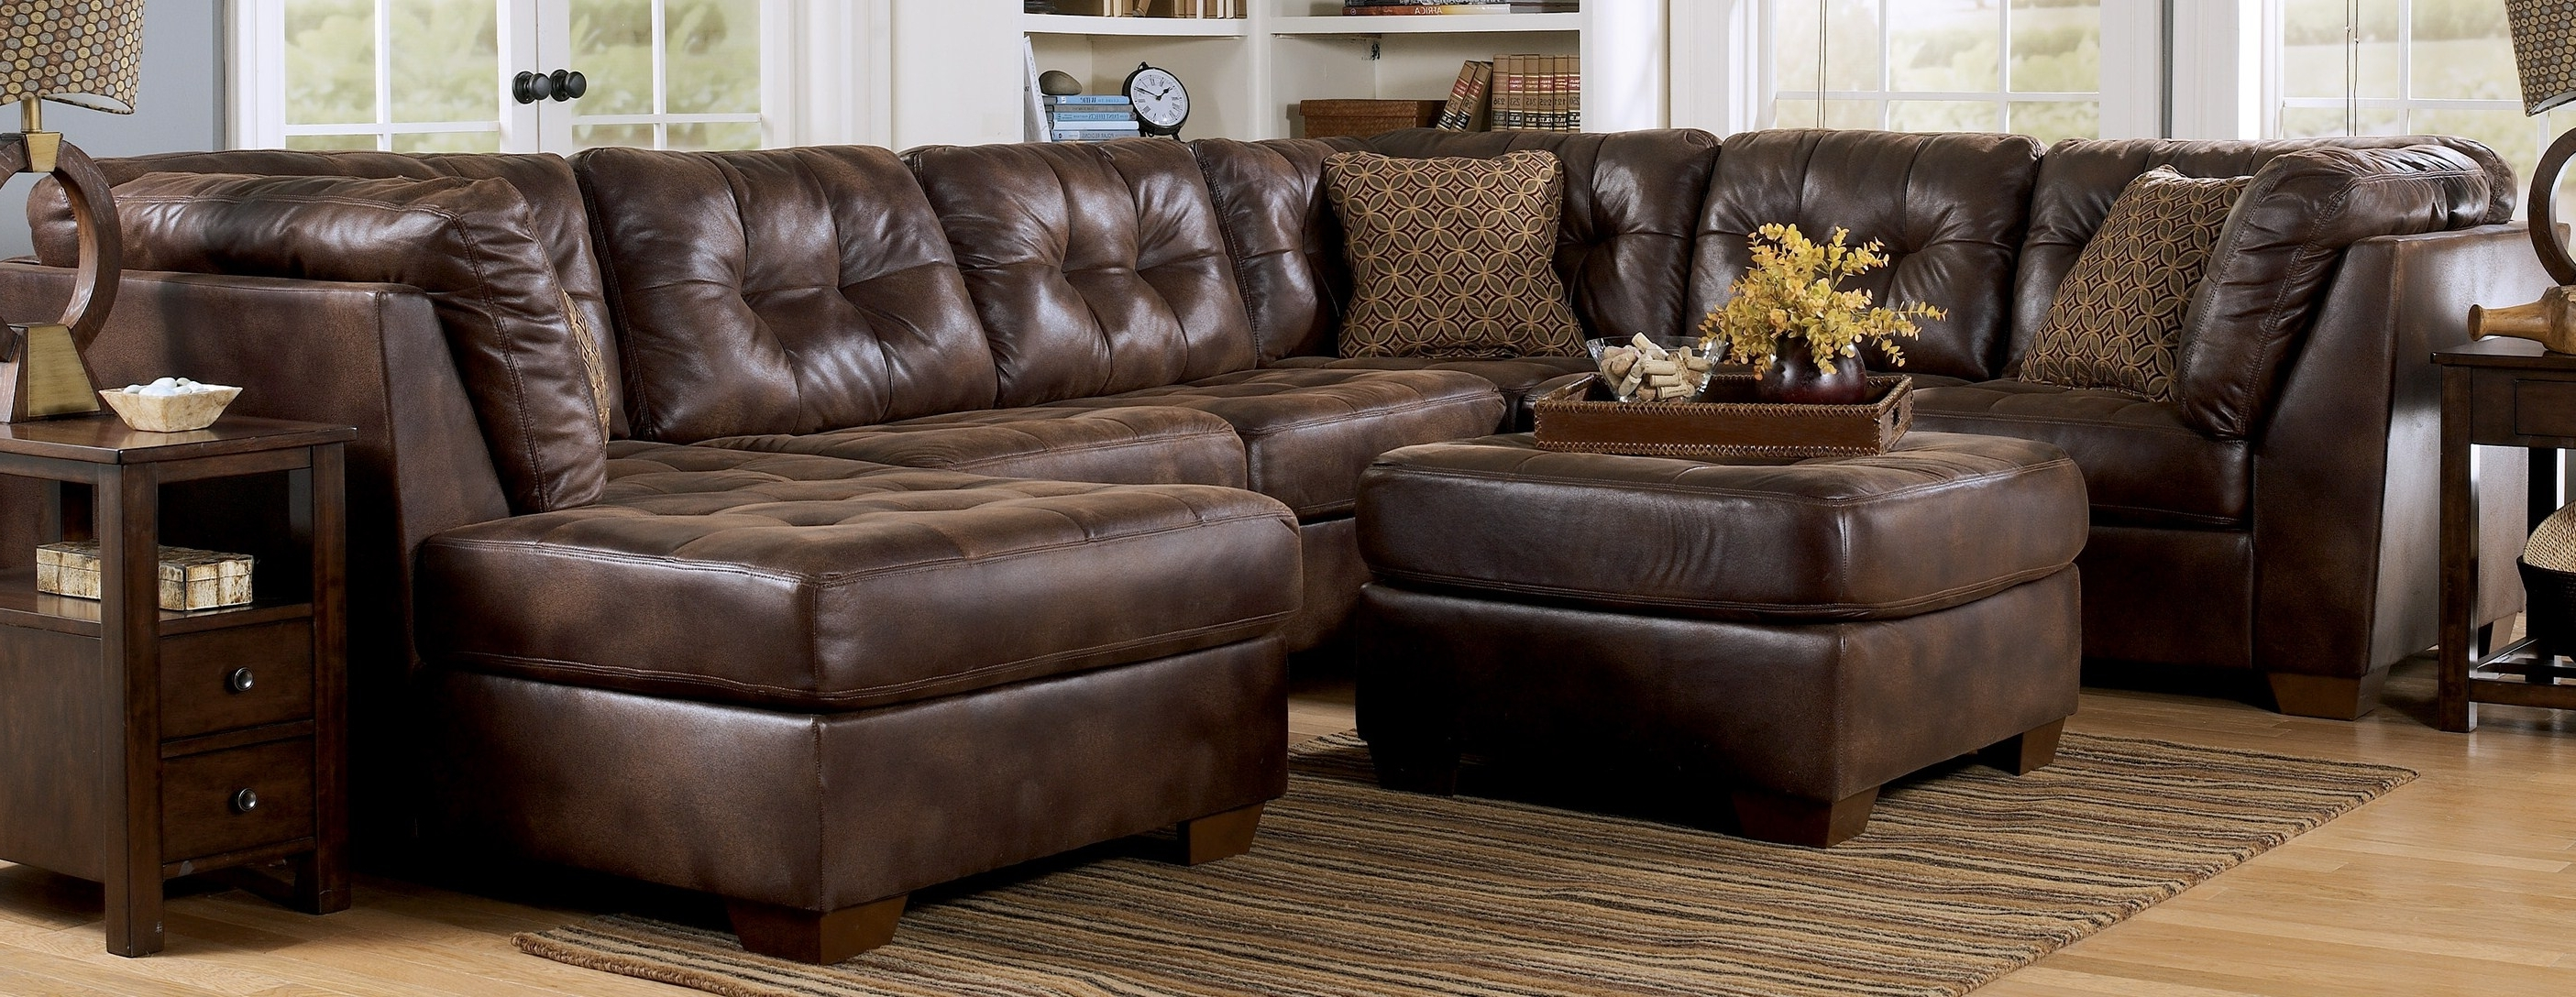 Big Lots Recliners Ashley Furniture Sectional Sofas Cheap In Favorite Big Lots Chaises (View 5 of 15)